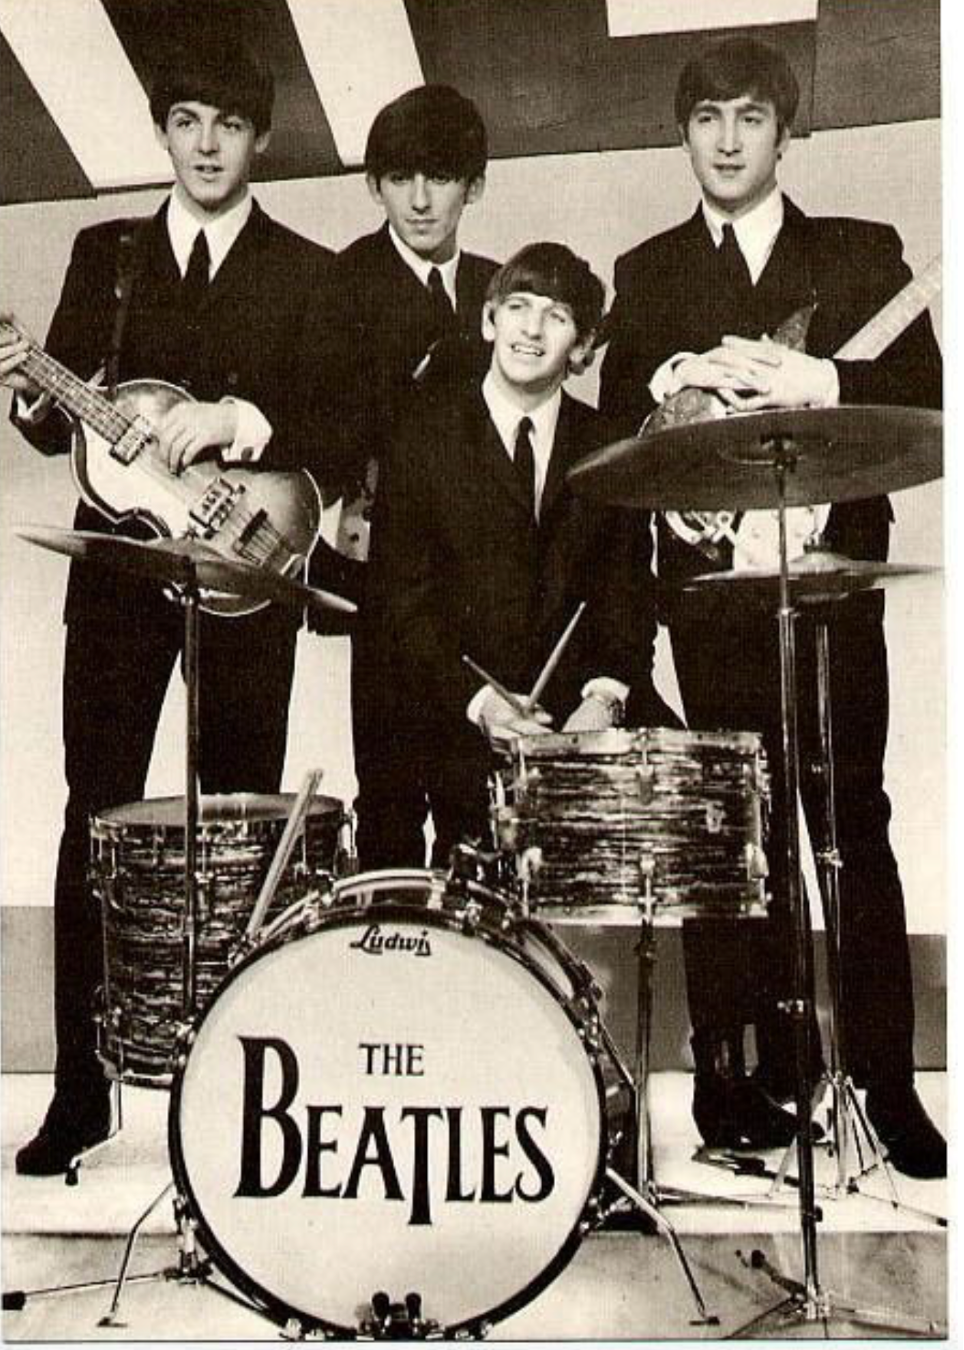 I Want to Hold Your Hand: the Beatles on the Ed Sullivan Show in 1964